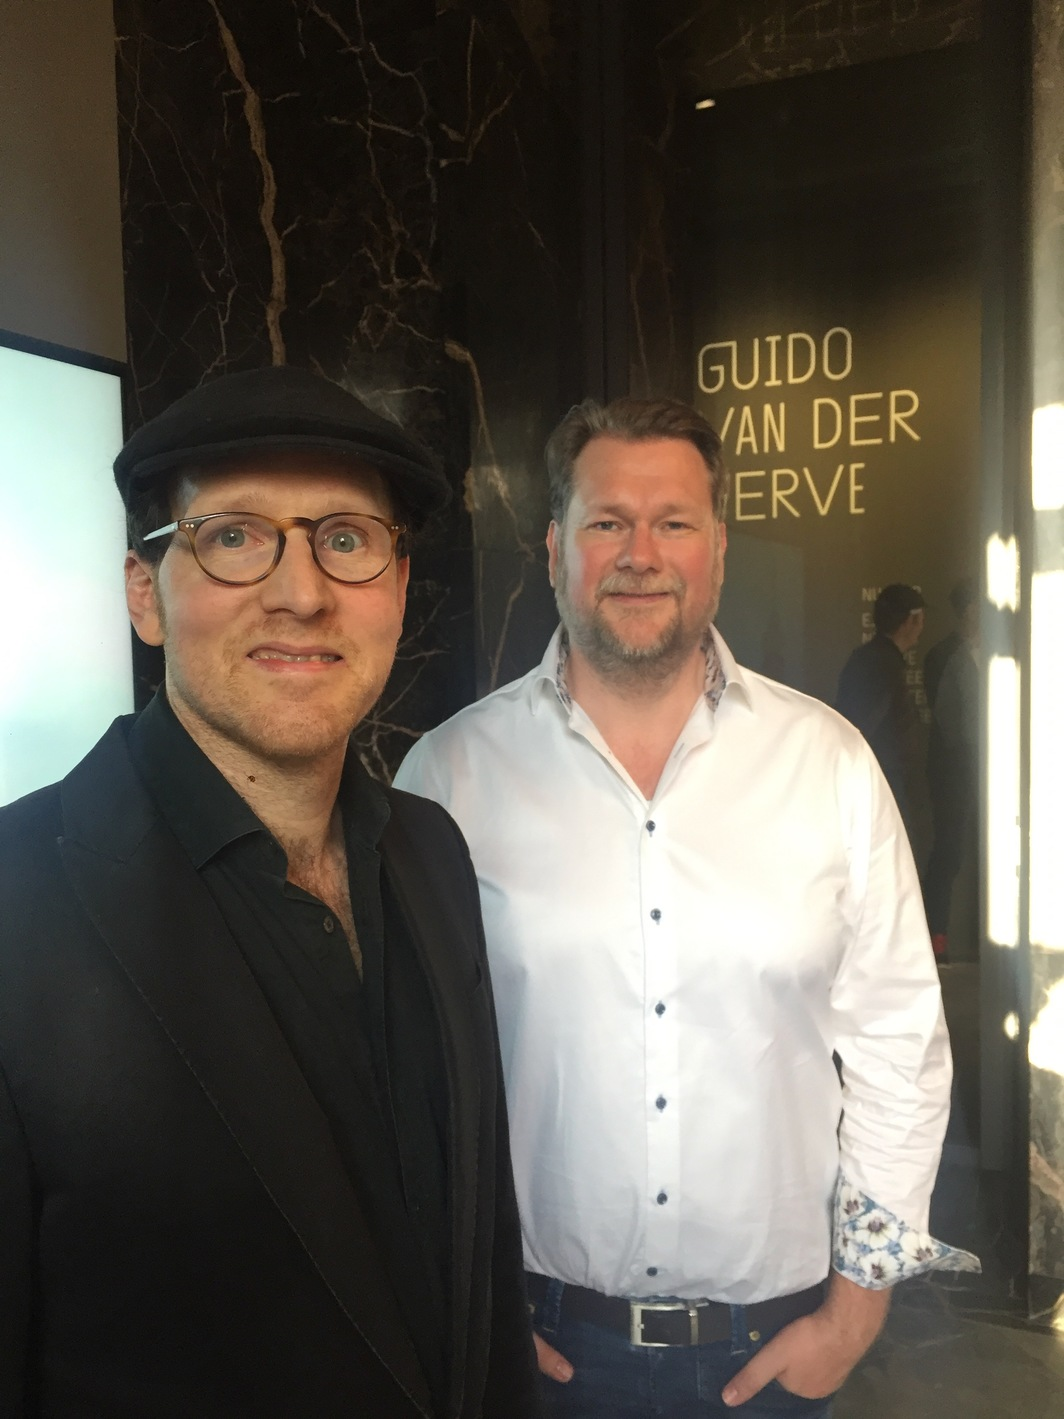 Artist Guido van der Werde with Fluemtum founder and collector Markus Hannebauer.